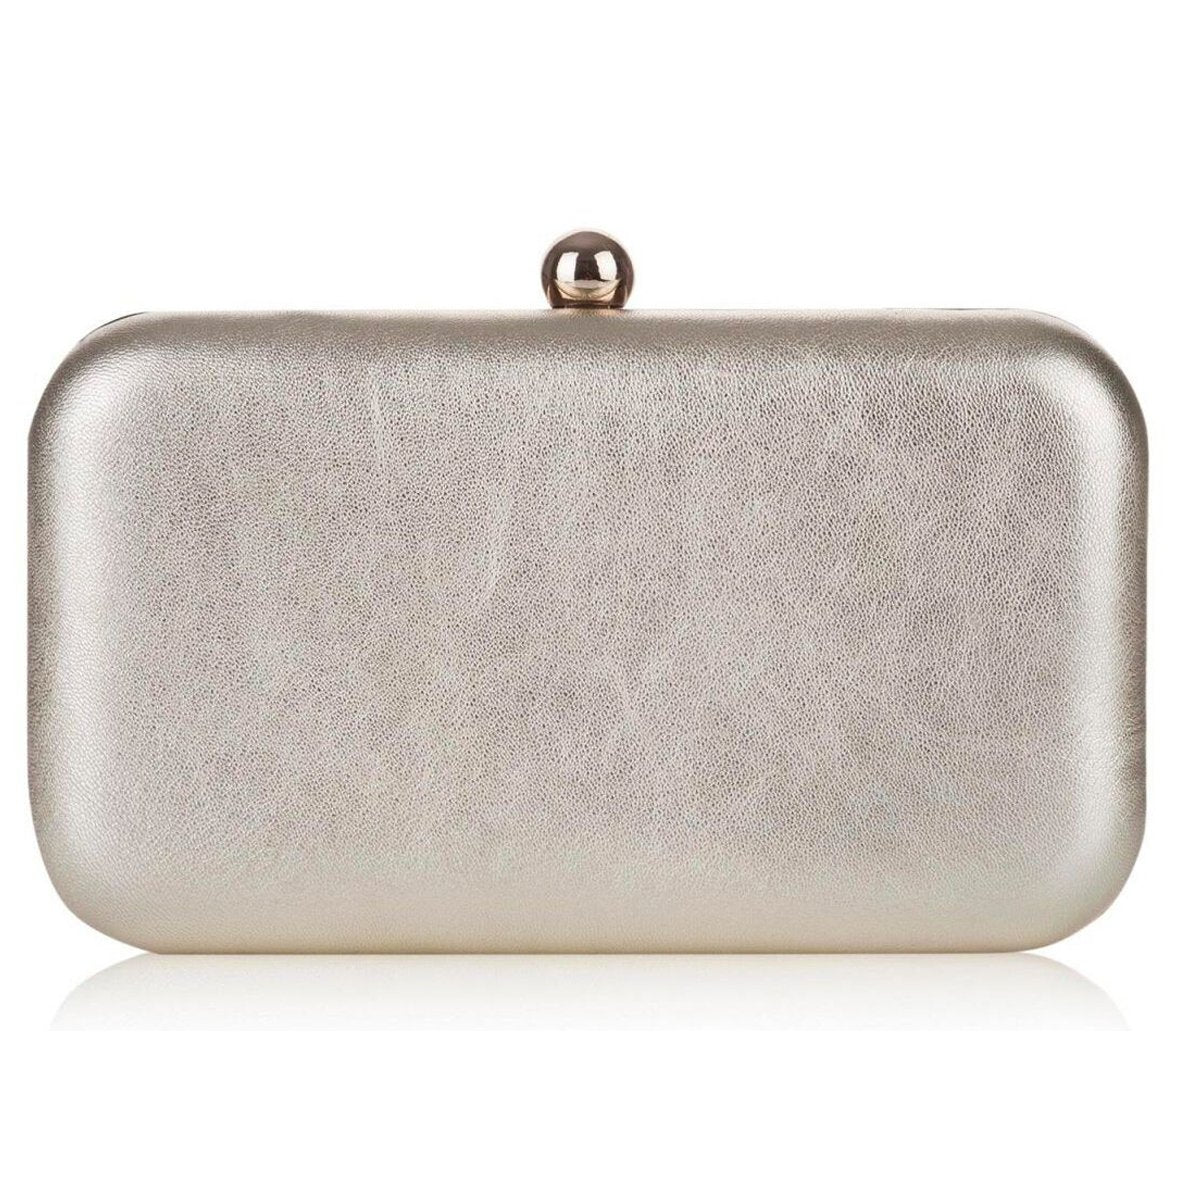 Rachel Simpson Gold Leather Clutch Wedding Bag